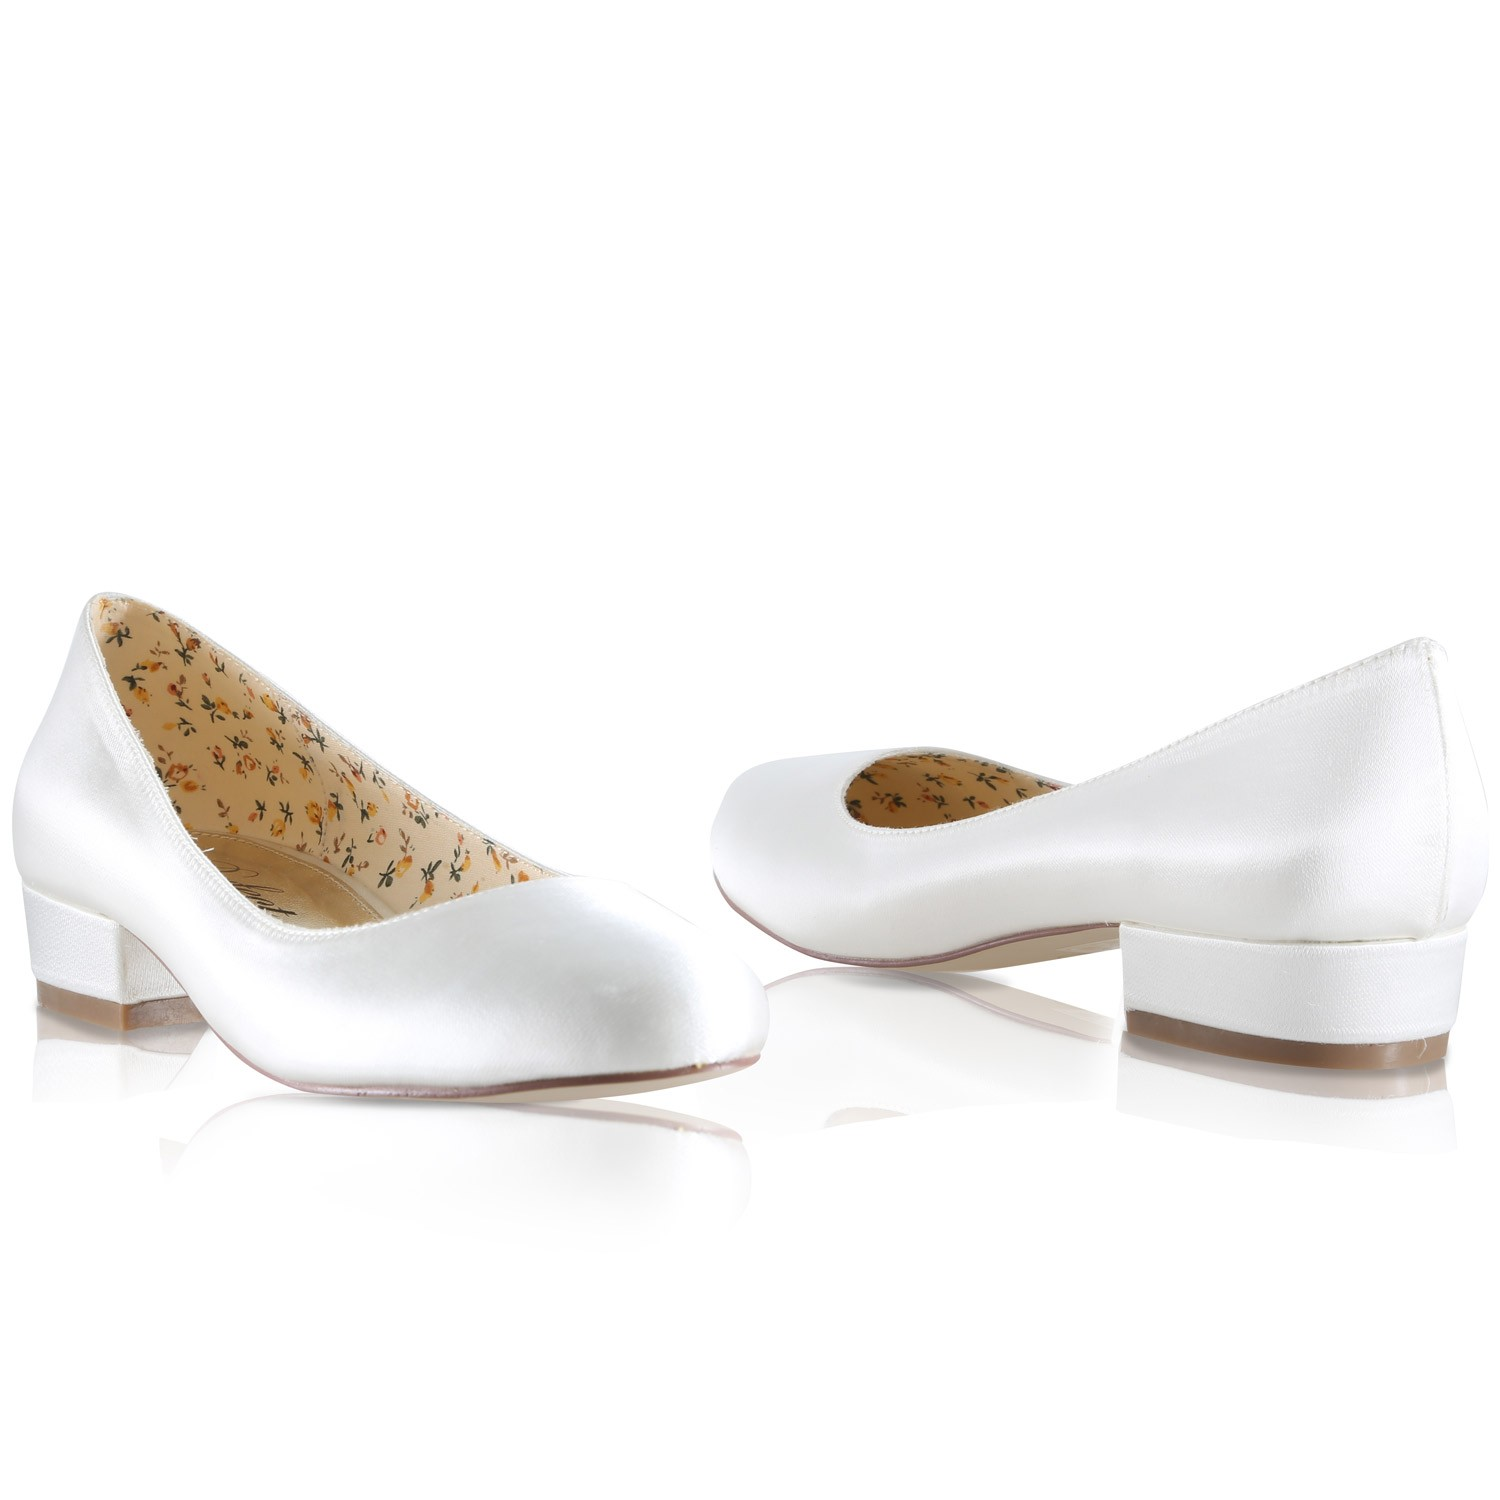 Chaussures Mariage Chaussures La La Mariage Mariée Mariage Chaussures Mariée 2YEHI9WD